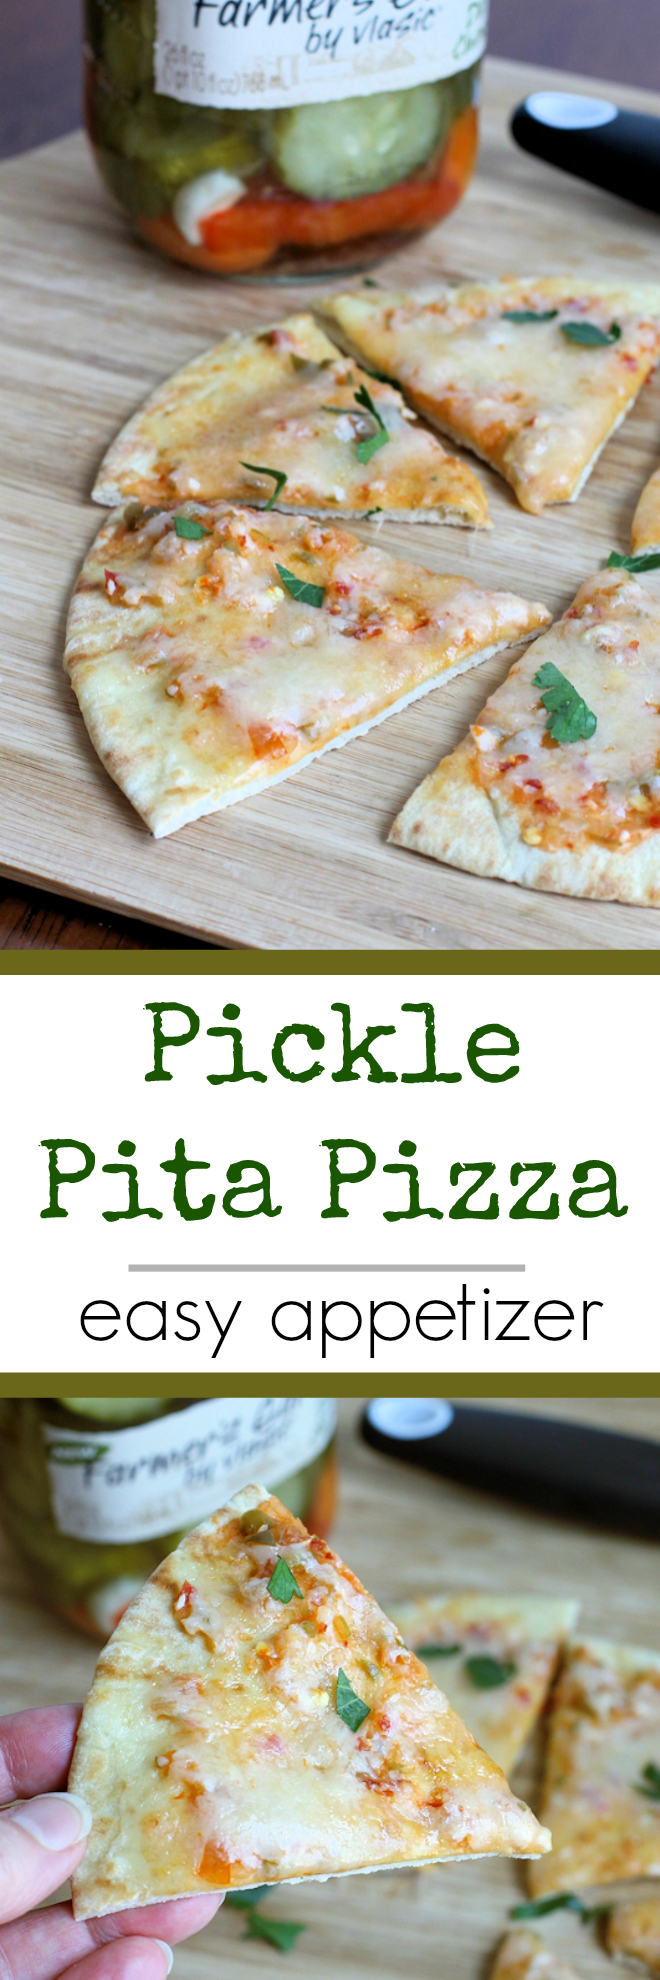 Pickle Pita Pizza